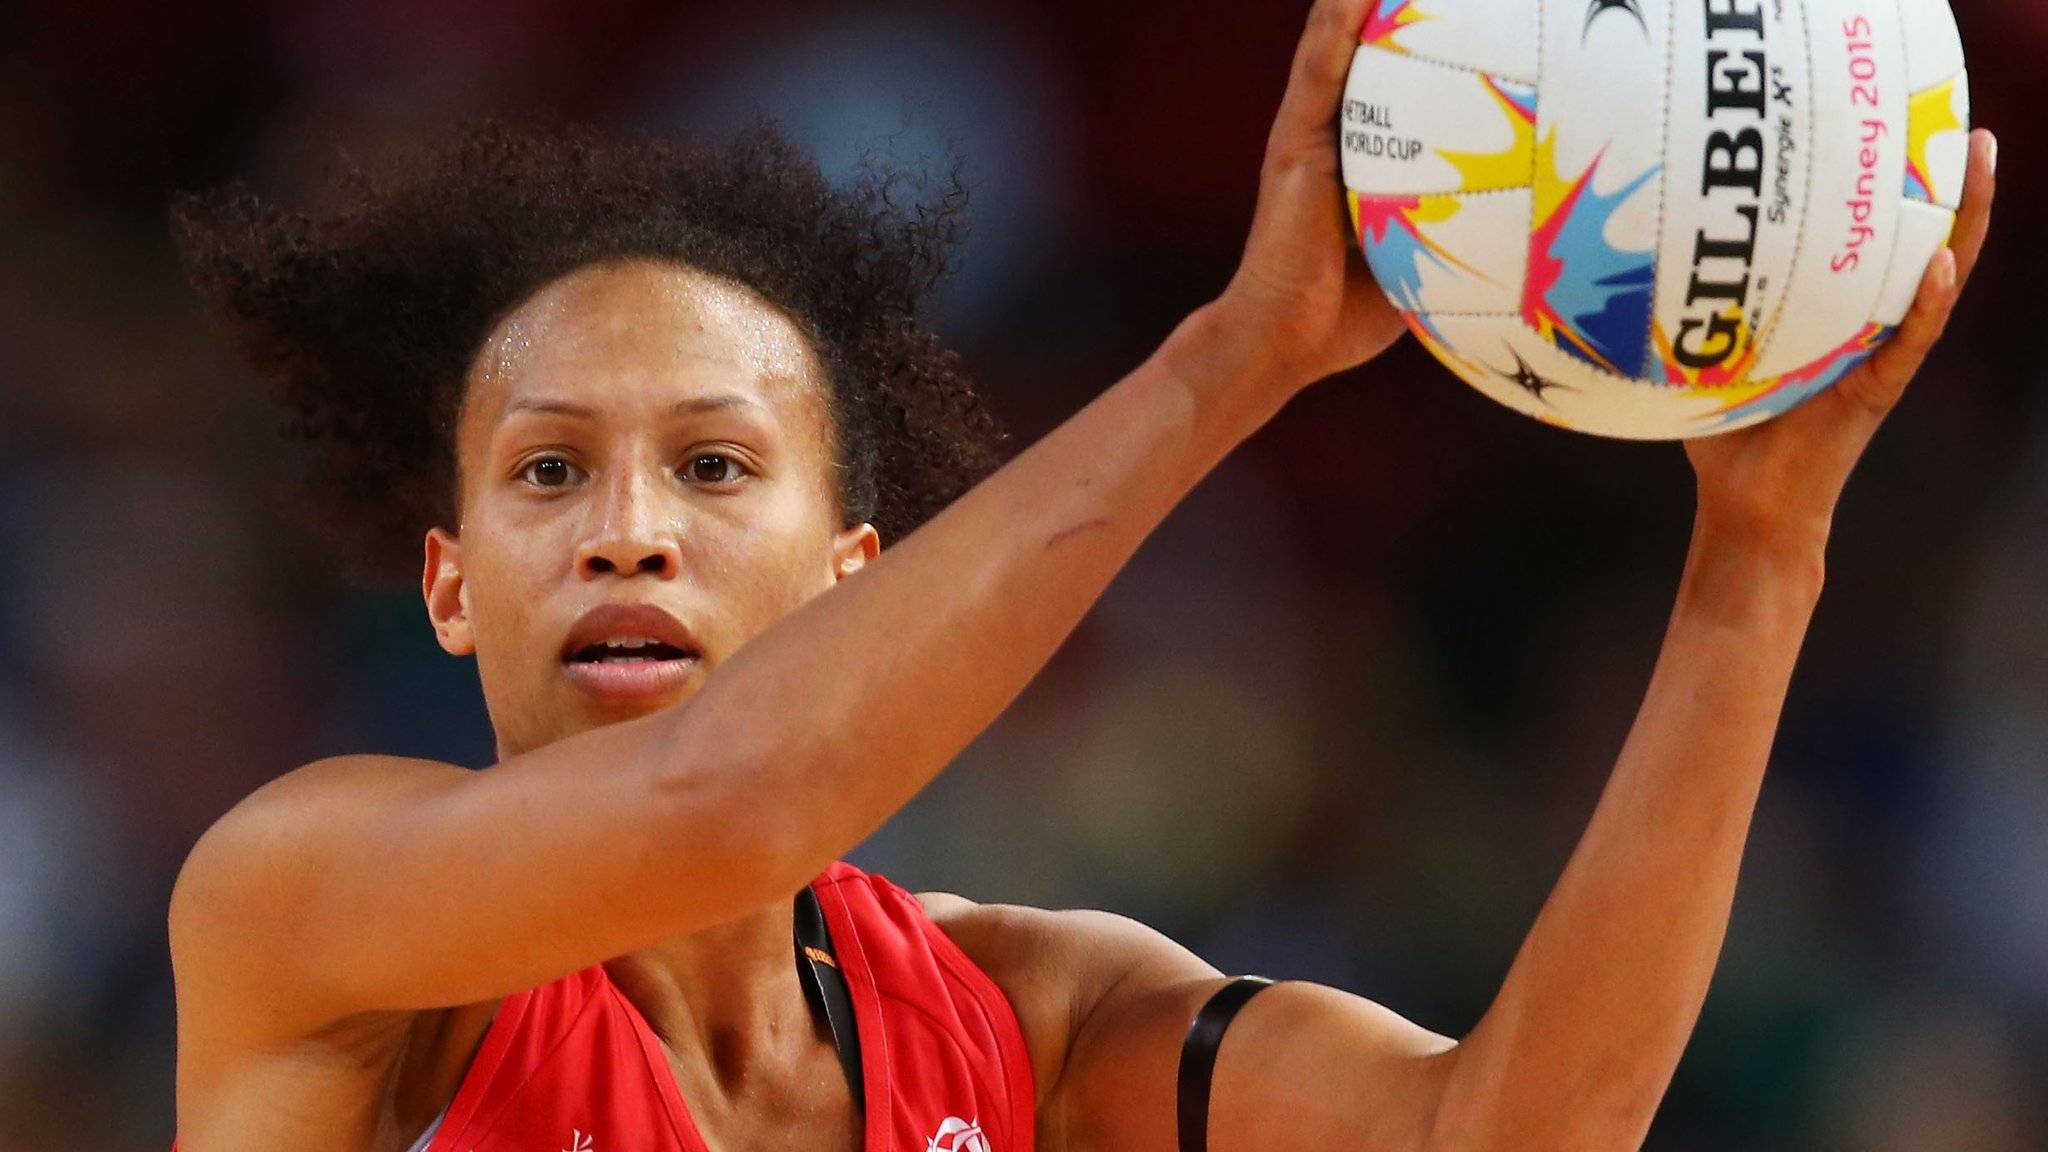 Netball star Guthrie to leave Australia and return to UK